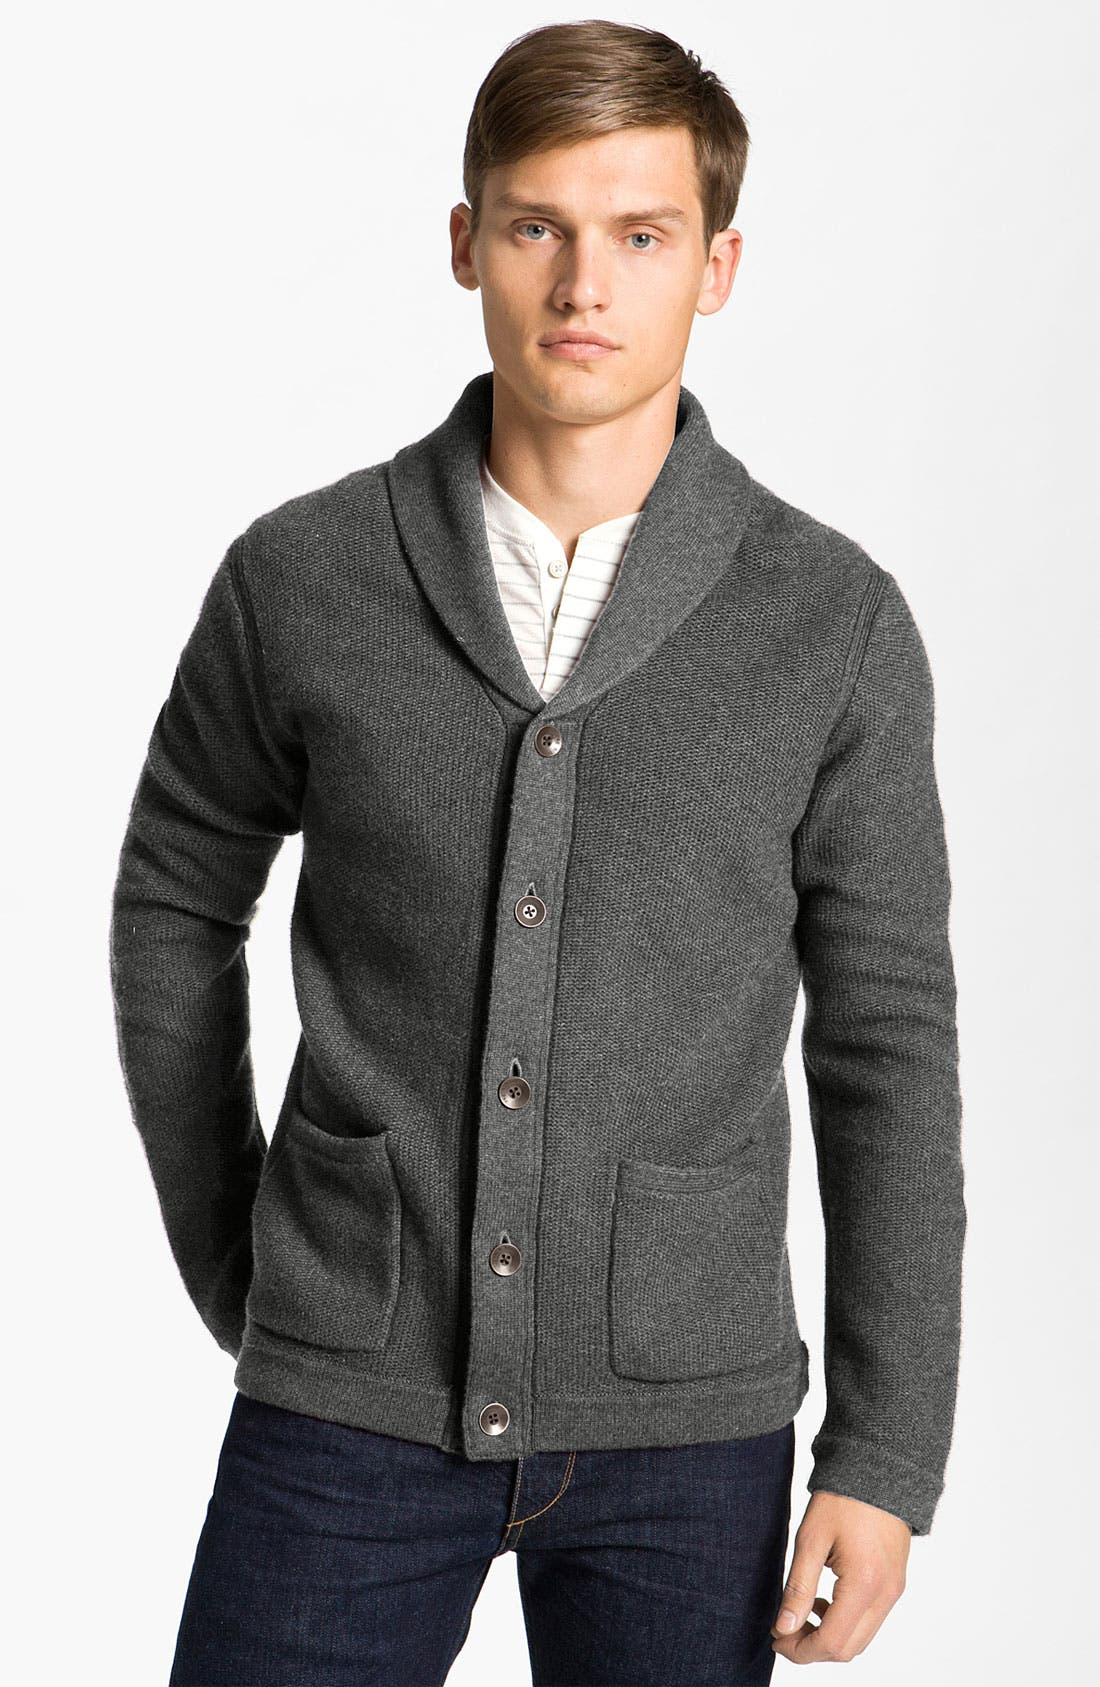 Alternate Image 1 Selected - rag & bone 'Avery' Shawl Collar Cardigan